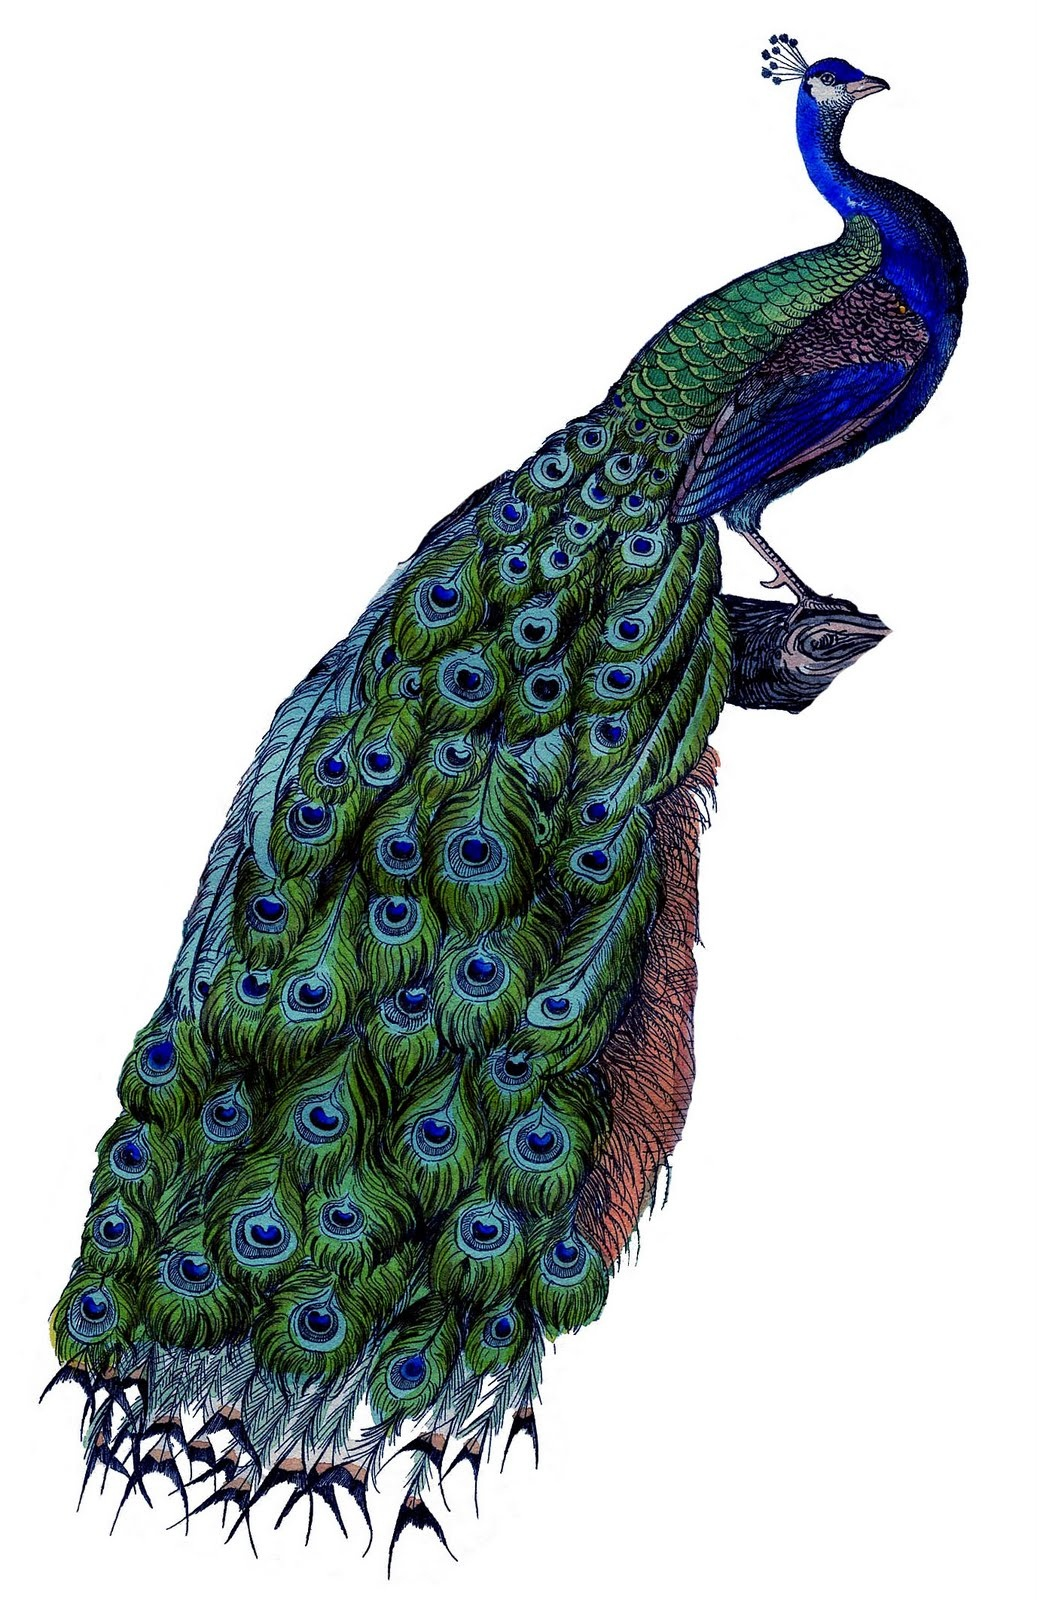 Instant Art Printable Download - Fabulous Colorful Peacock - The - Free Printable Peacock Pictures